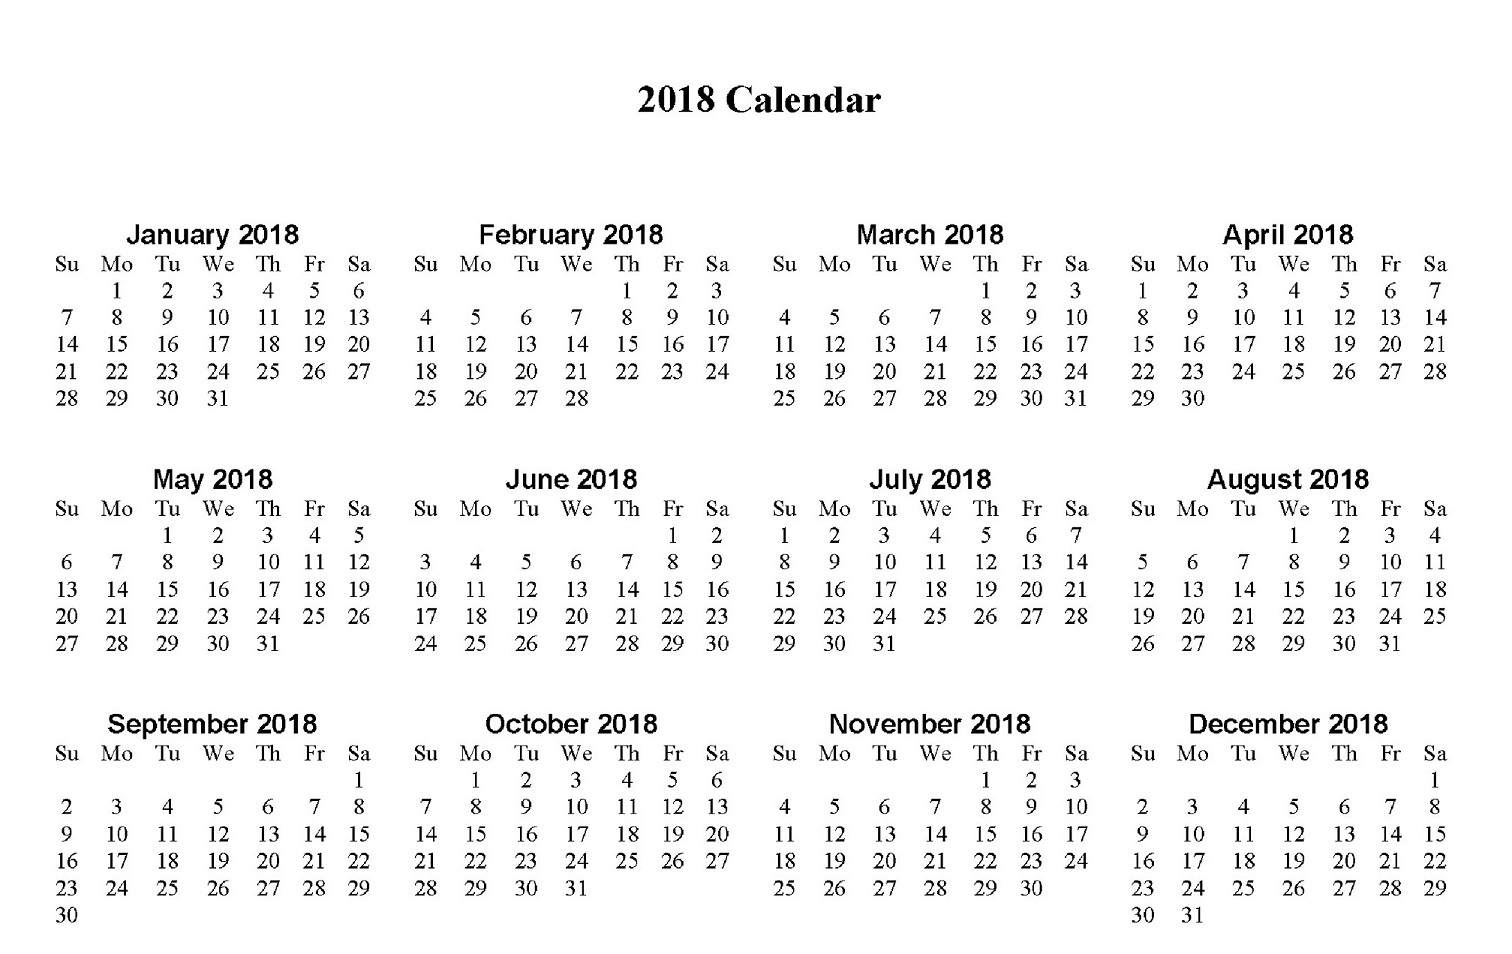 2018 calendar for website.jpg